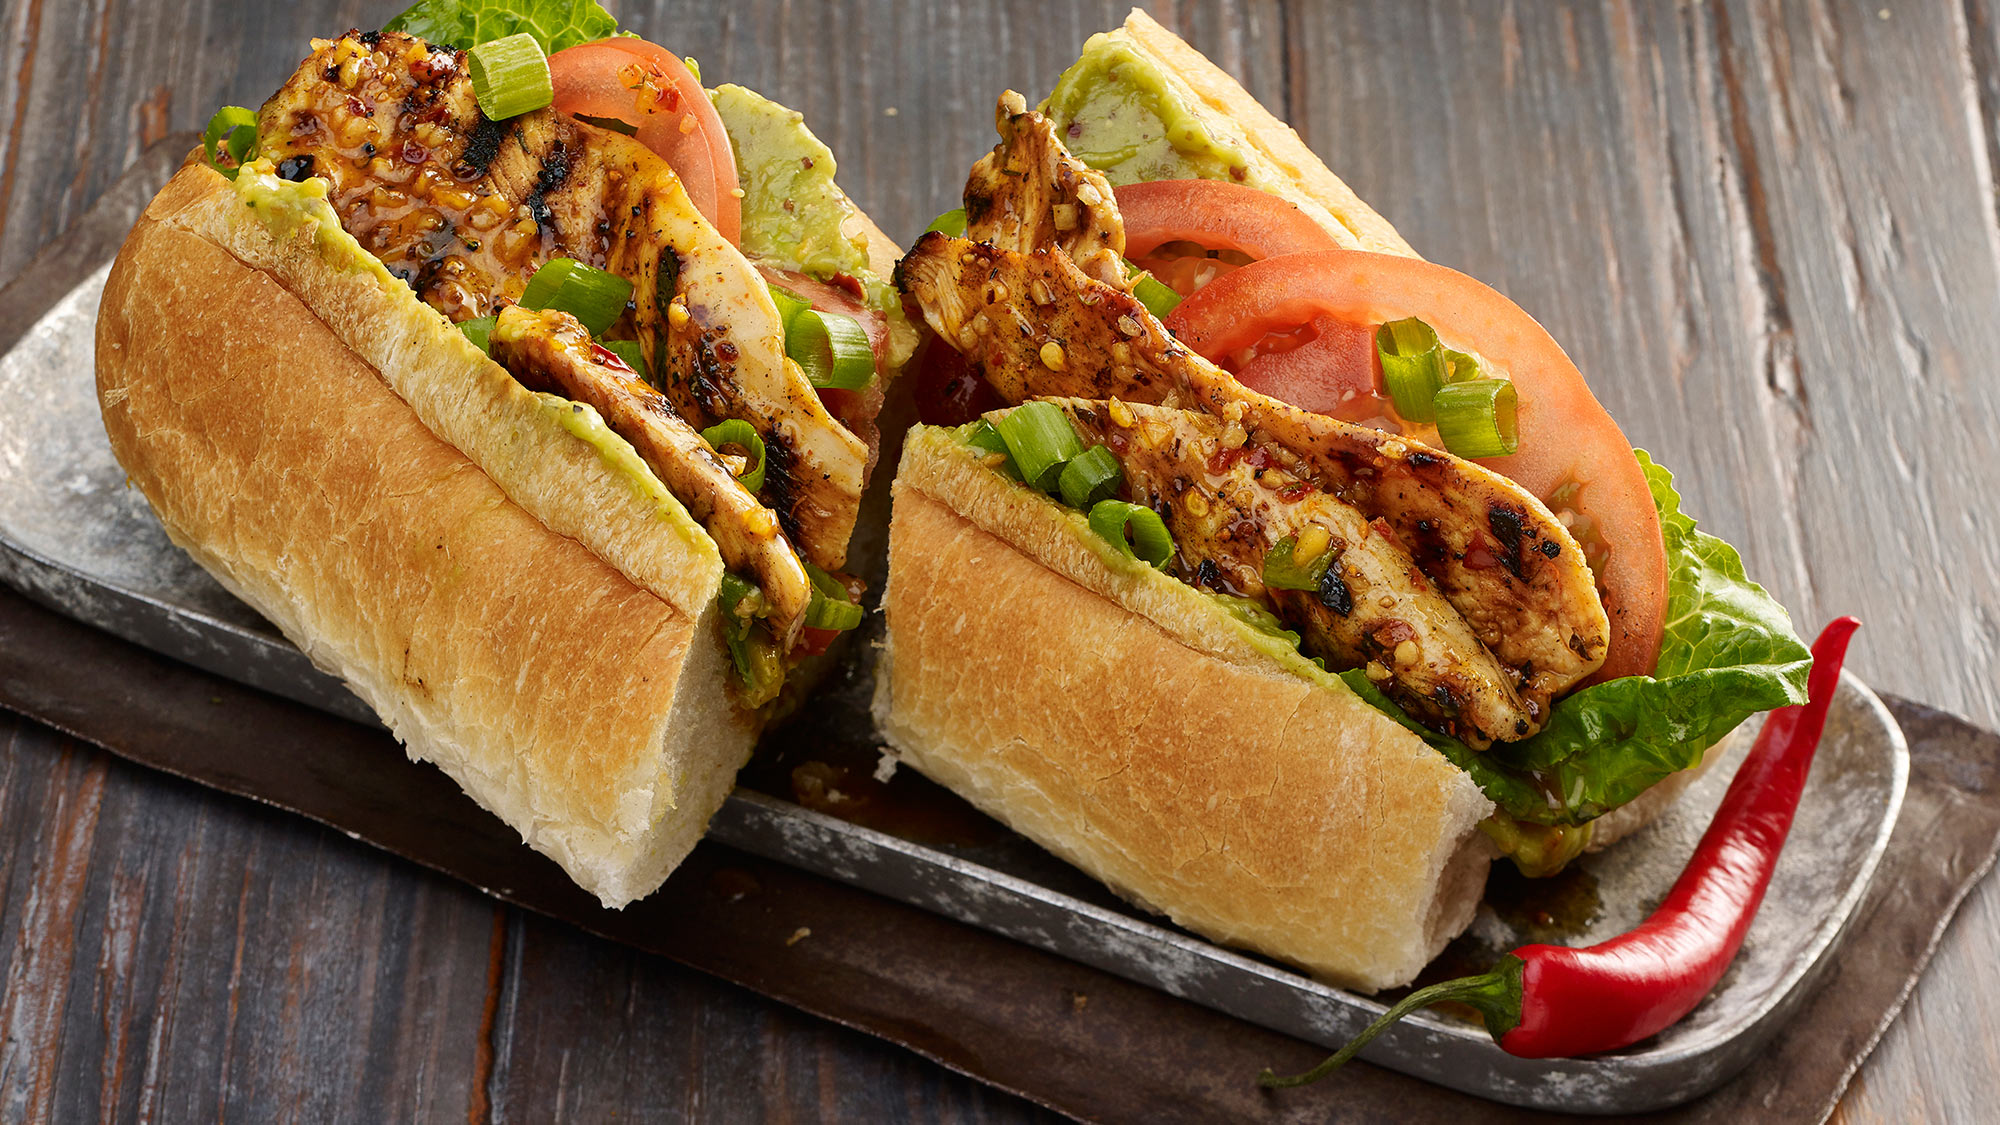 Grill Mates Grilled Chicken Po Boy Sandwich with Spicy Creole Mustard Sauce